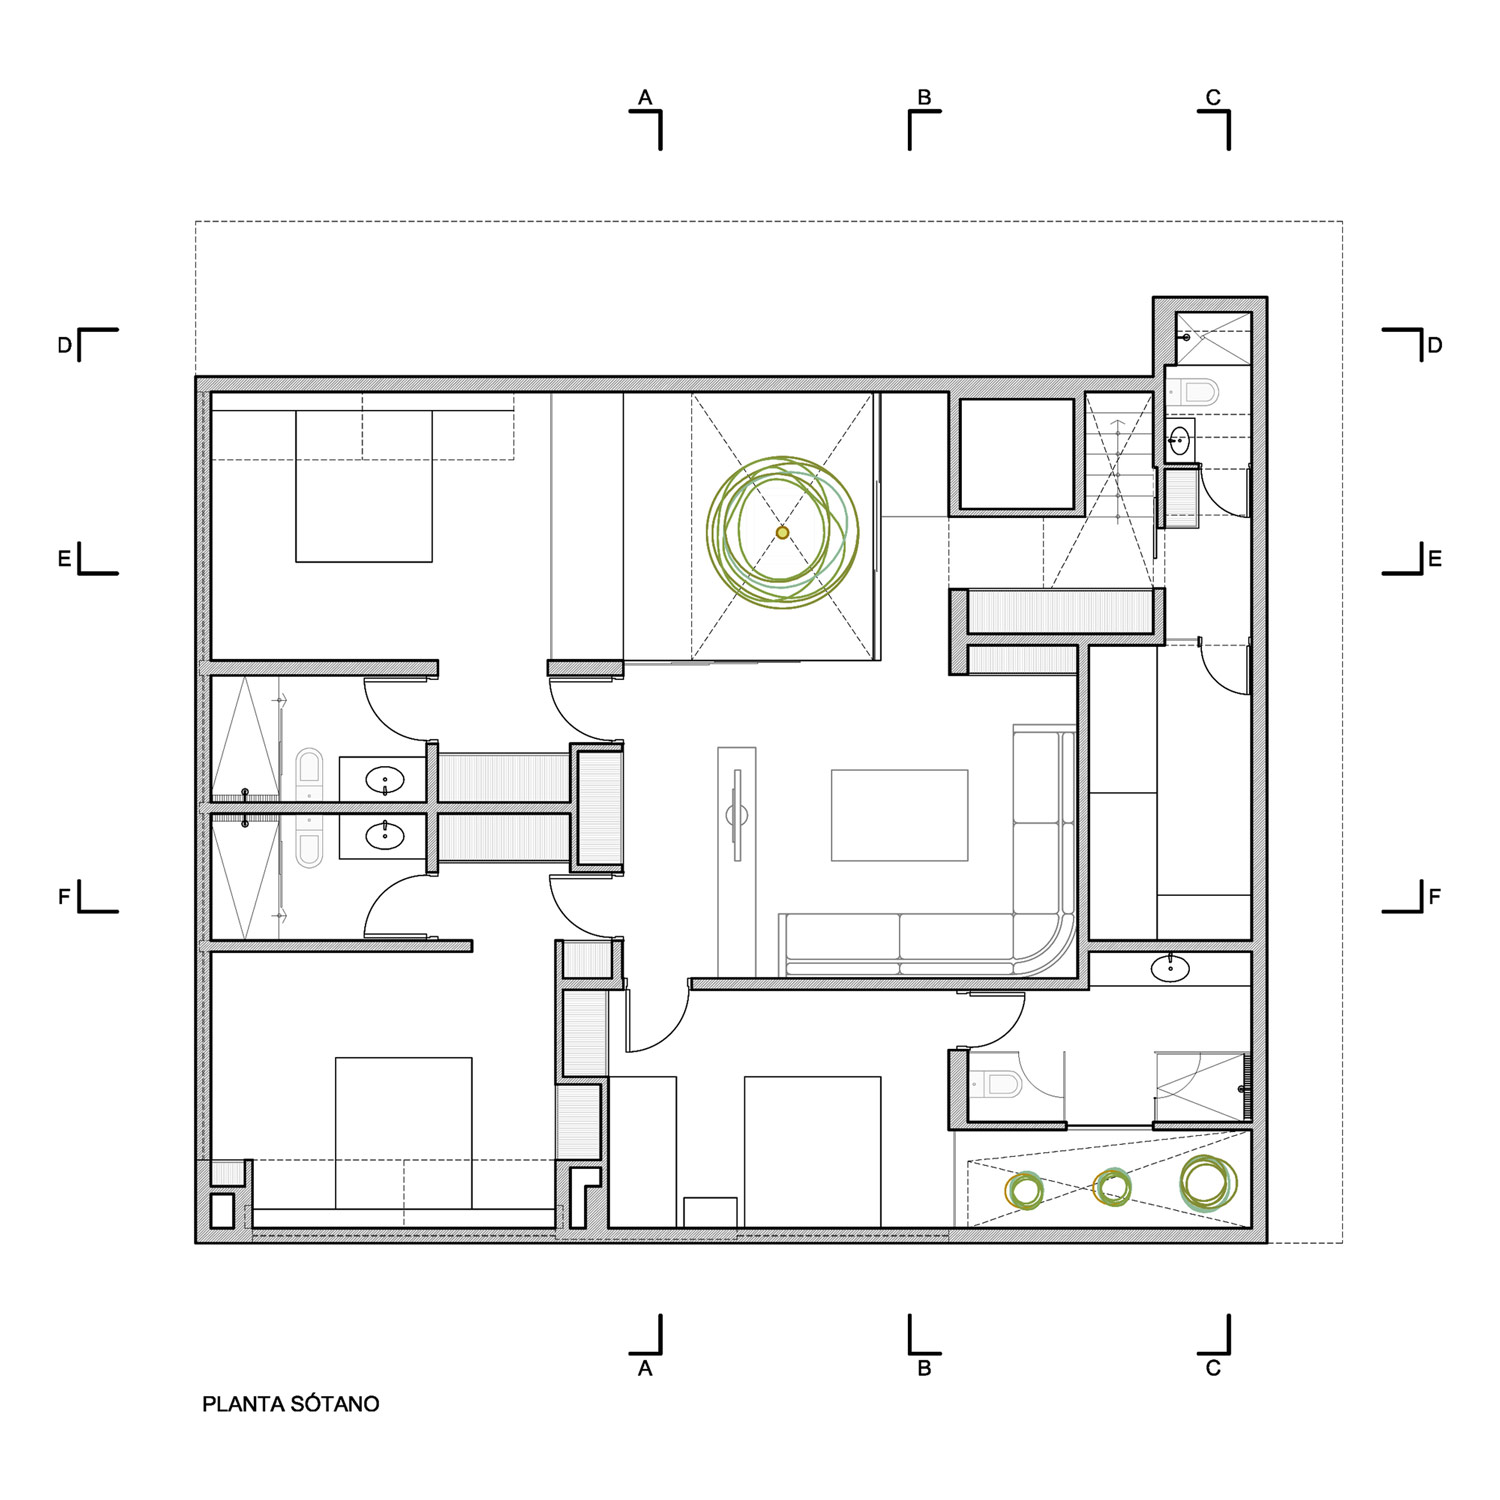 Basement Floor Plan Modern Home Lima Peru on modern house design in peru